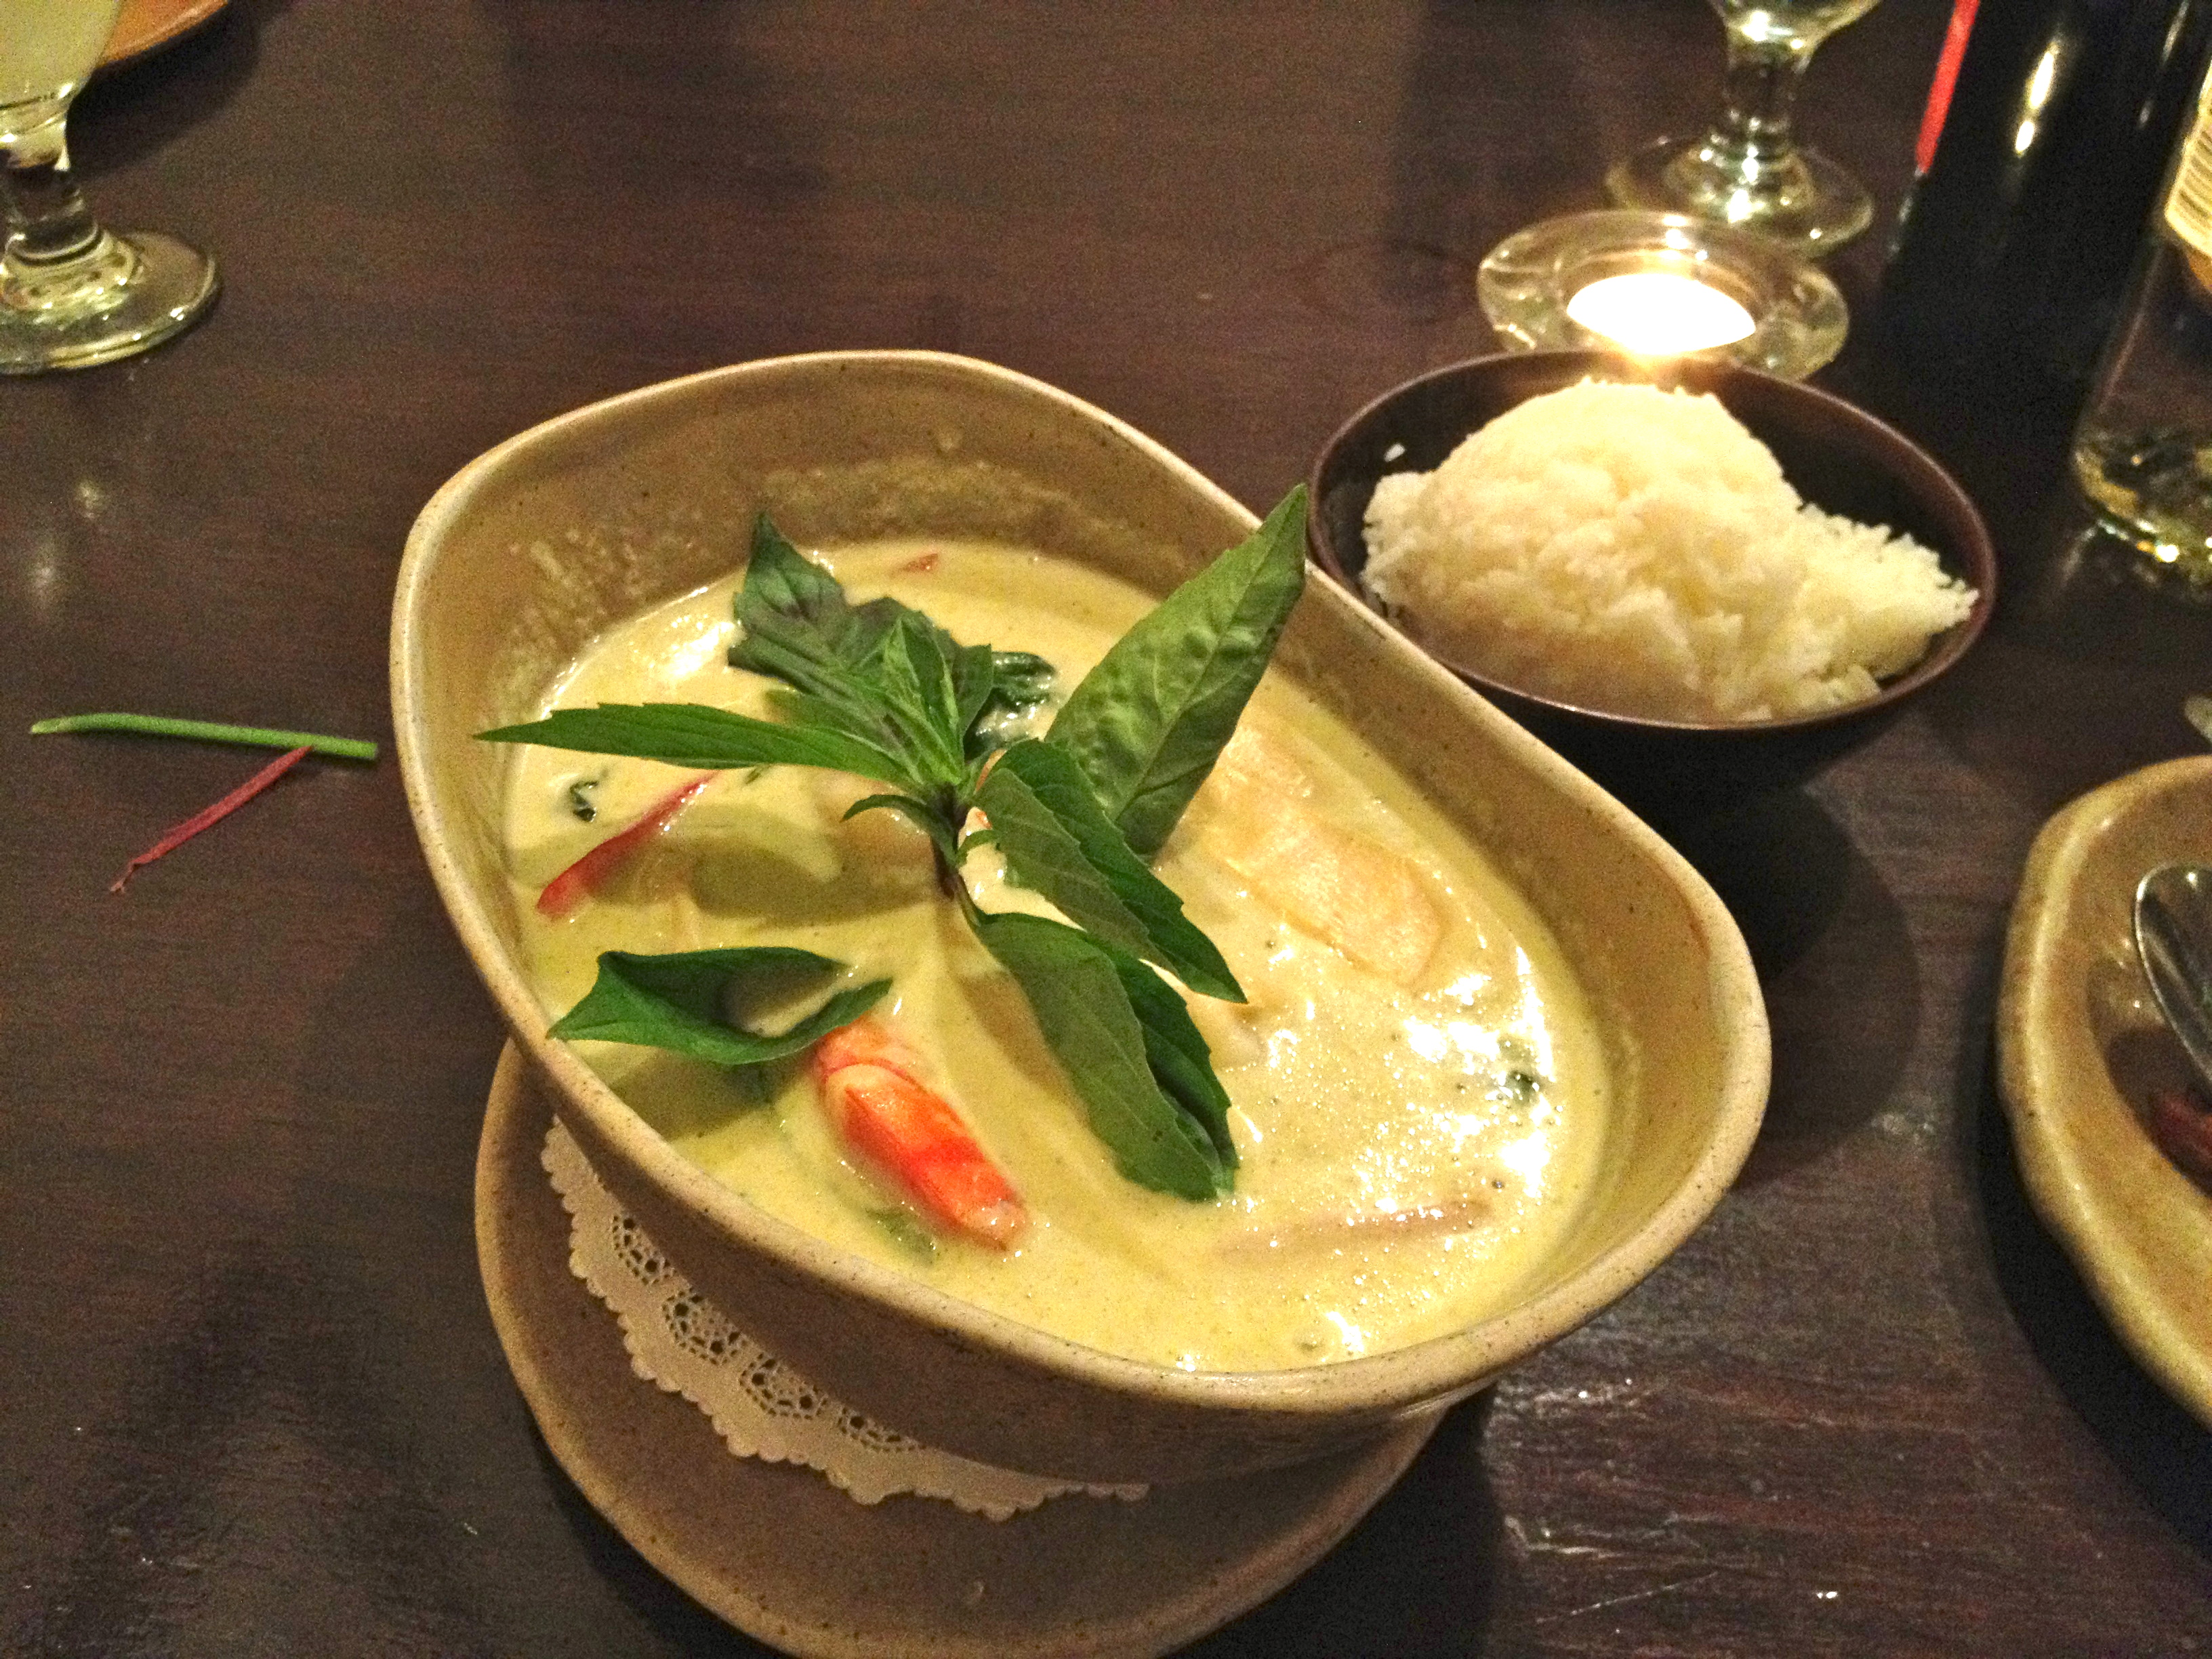 Moon's Kang Keaw Wan (Green Curry)